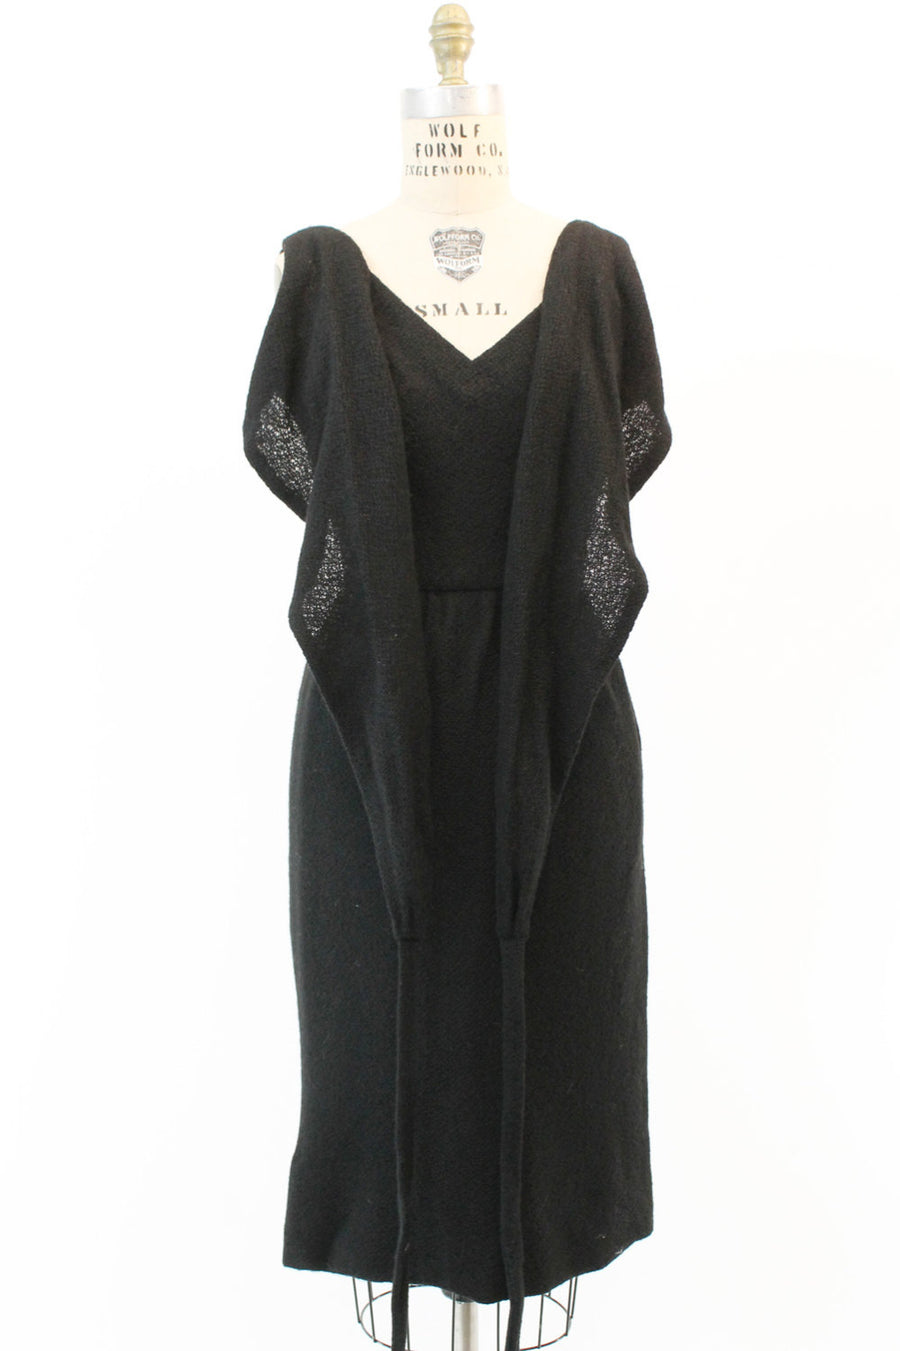 1950s Joseph Magnin wool wrap dress xs | vintage cinch waist dress